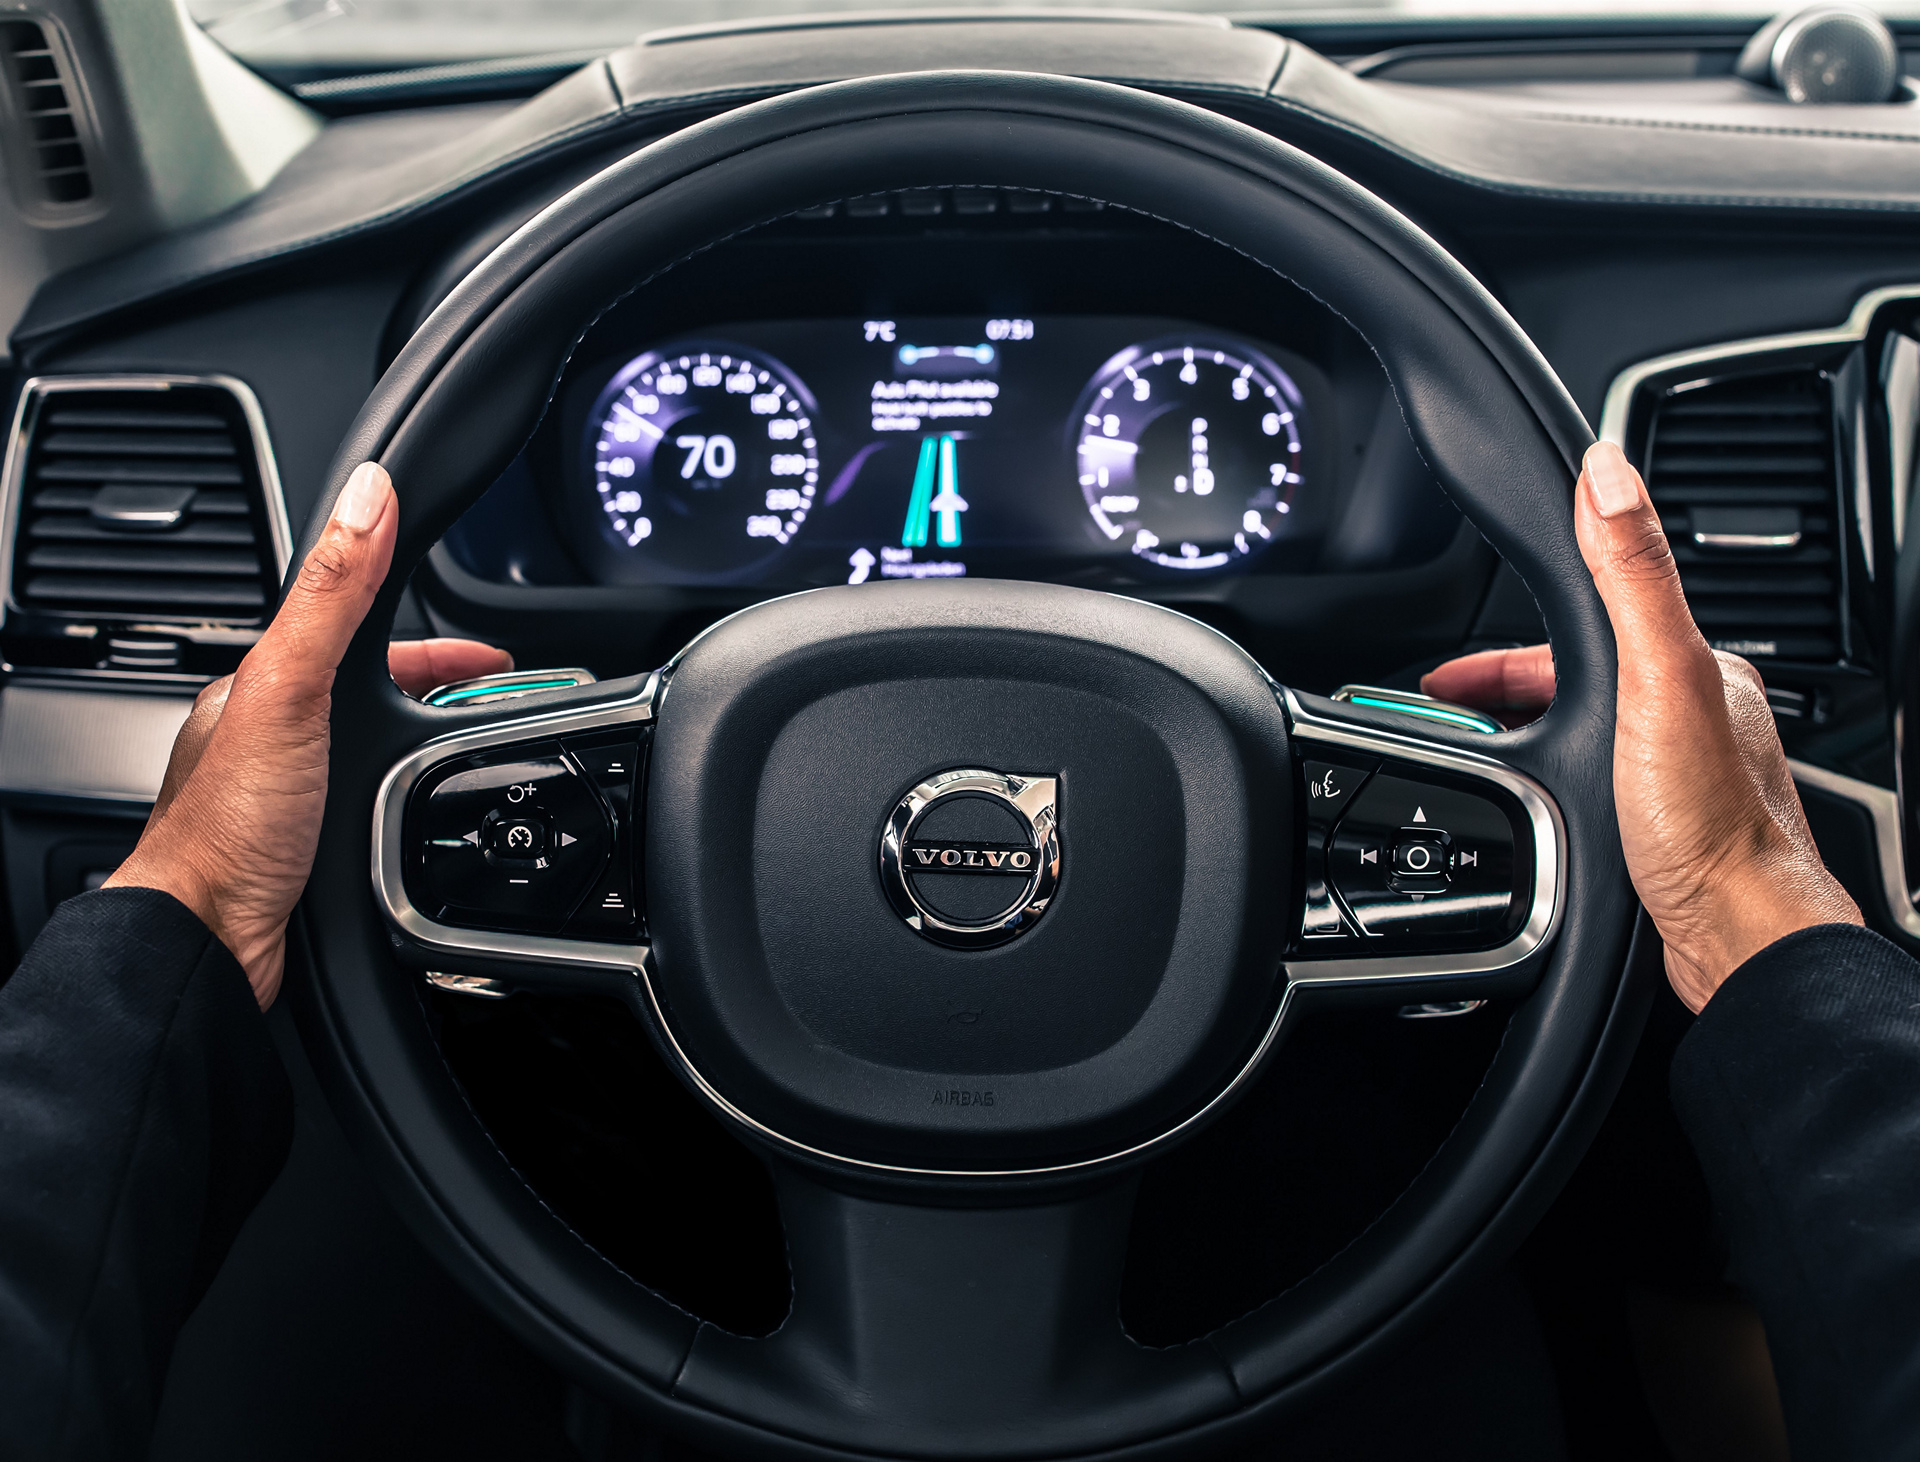 Volvo Cars and Uber join forces to develop autonomous driving cars © Zhejiang Geely Holding Group Co., Ltd